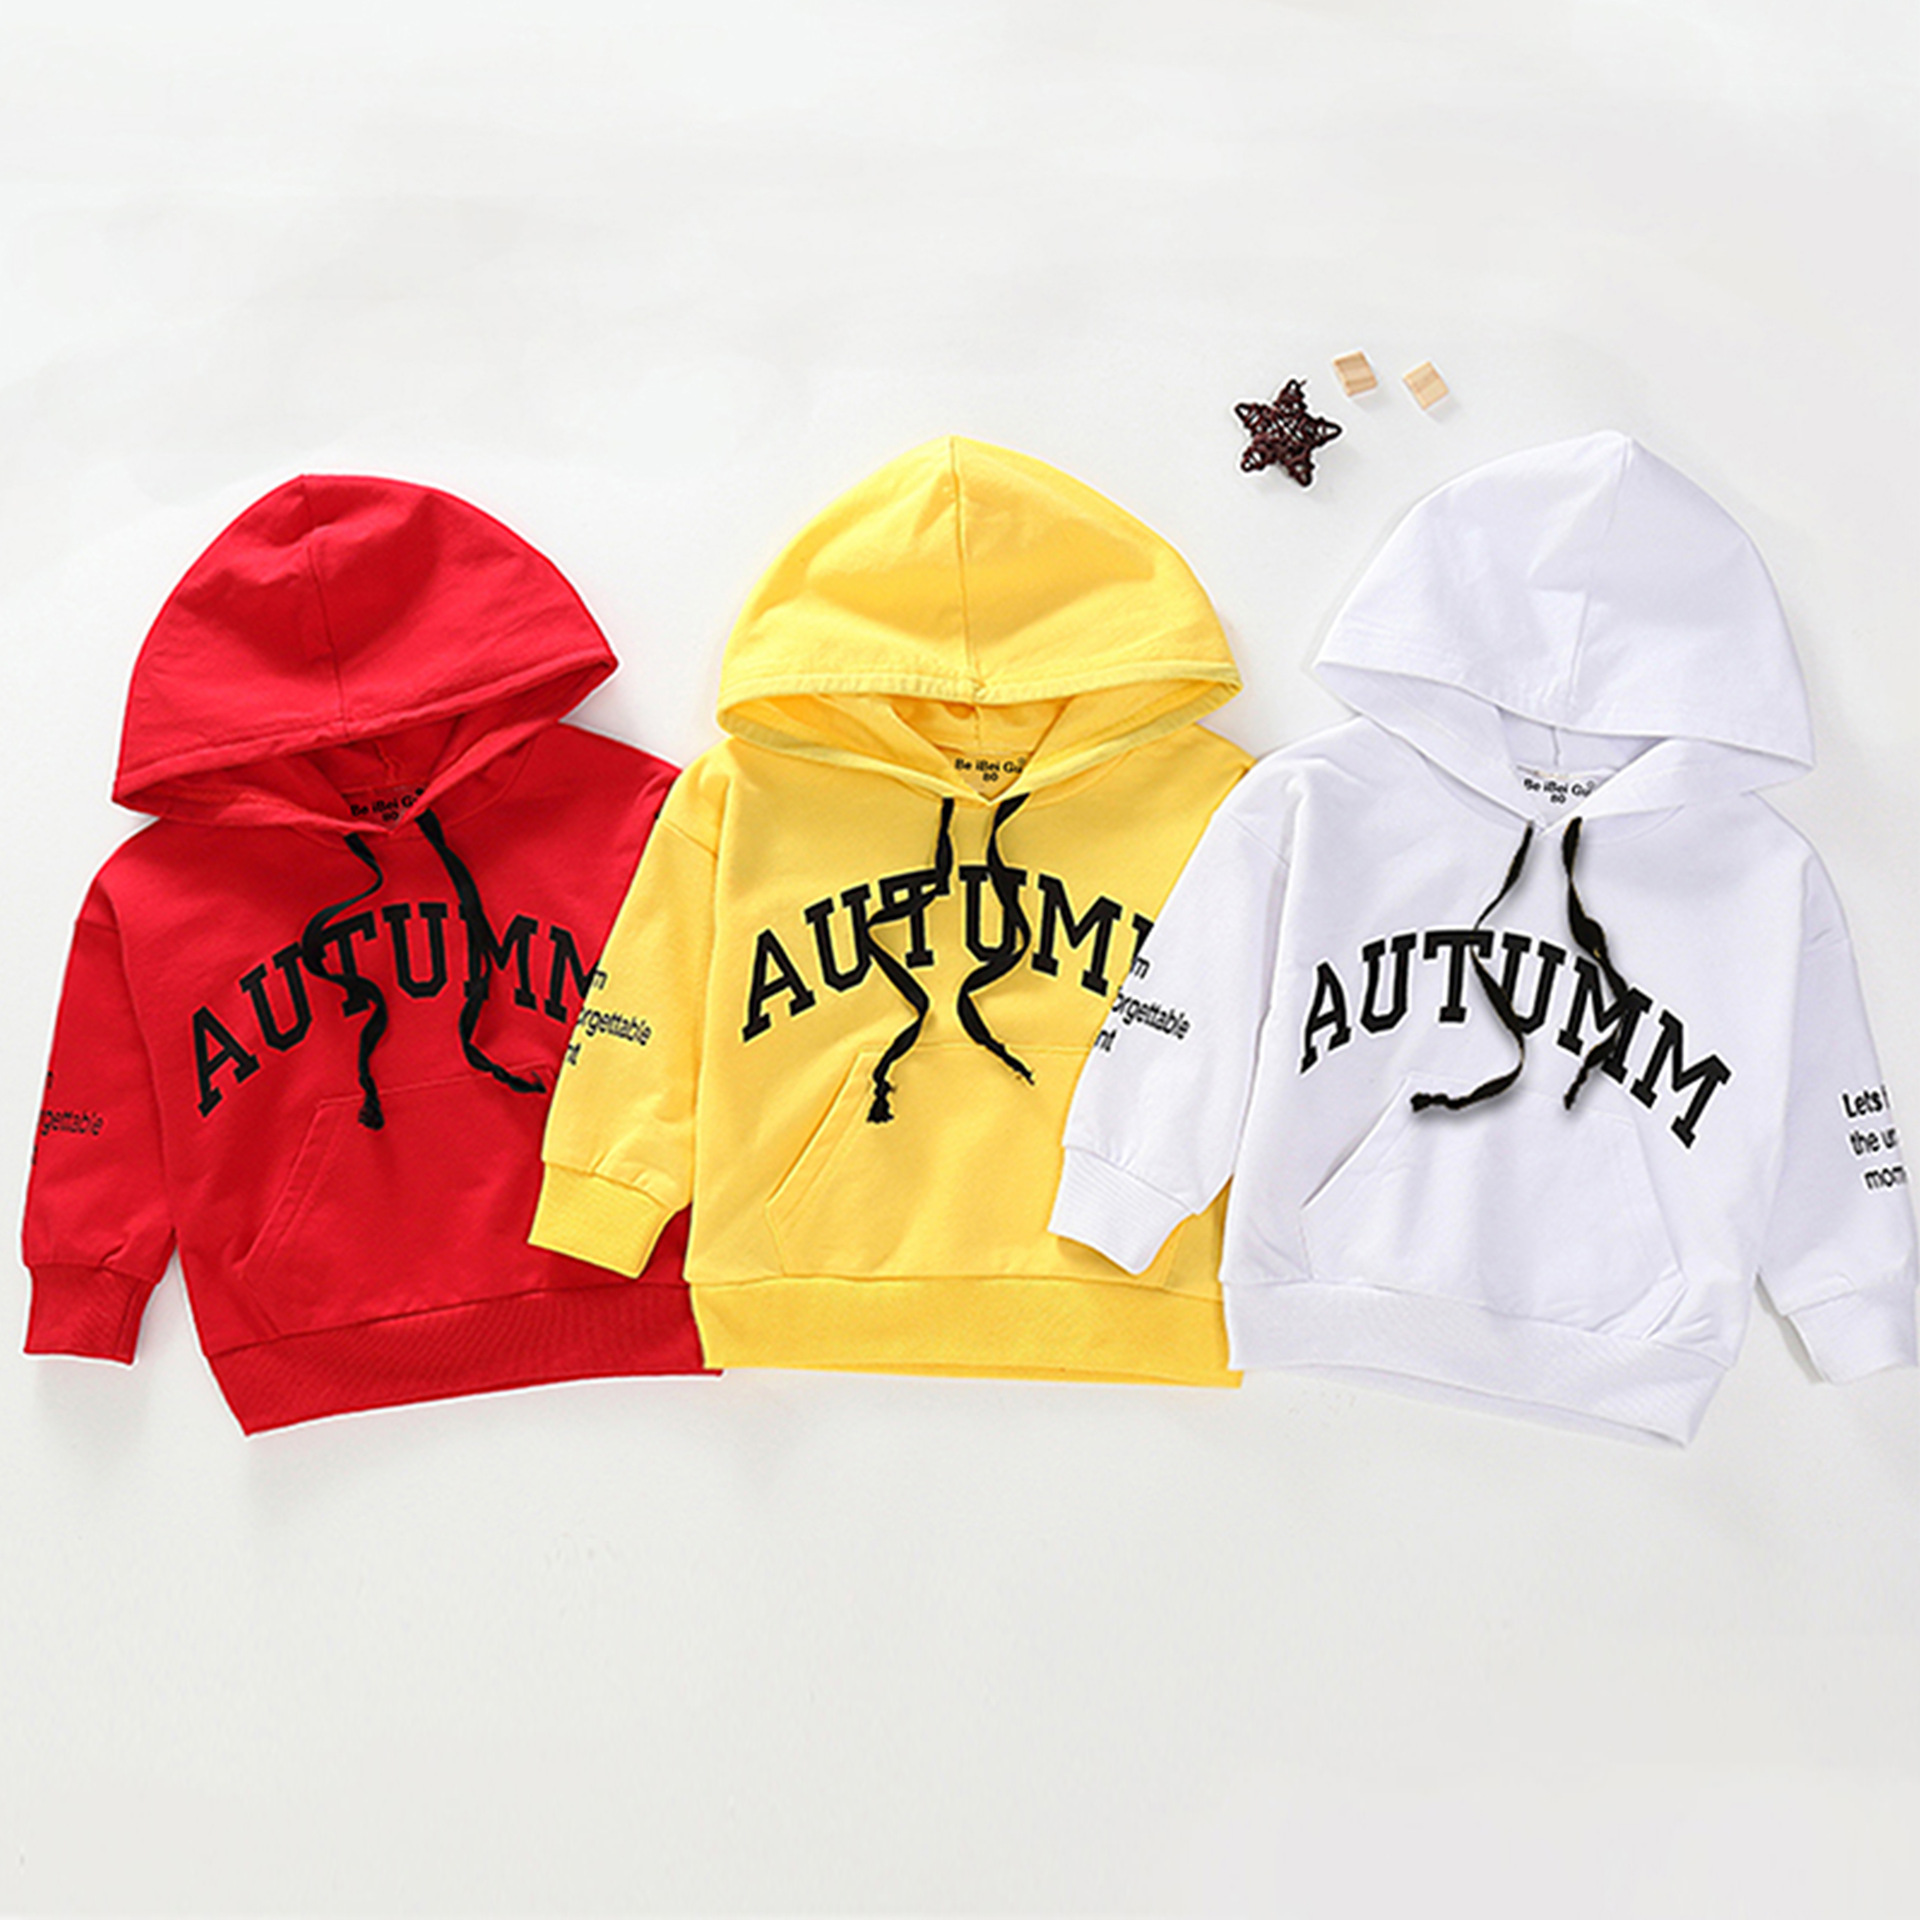 Spring Autumn Fashion Baby Clothes Infant AUTUMN Letter Blouse Kid Hoodies Tops Boys Girls Cotton Leisure Sport Hooded Hoodies